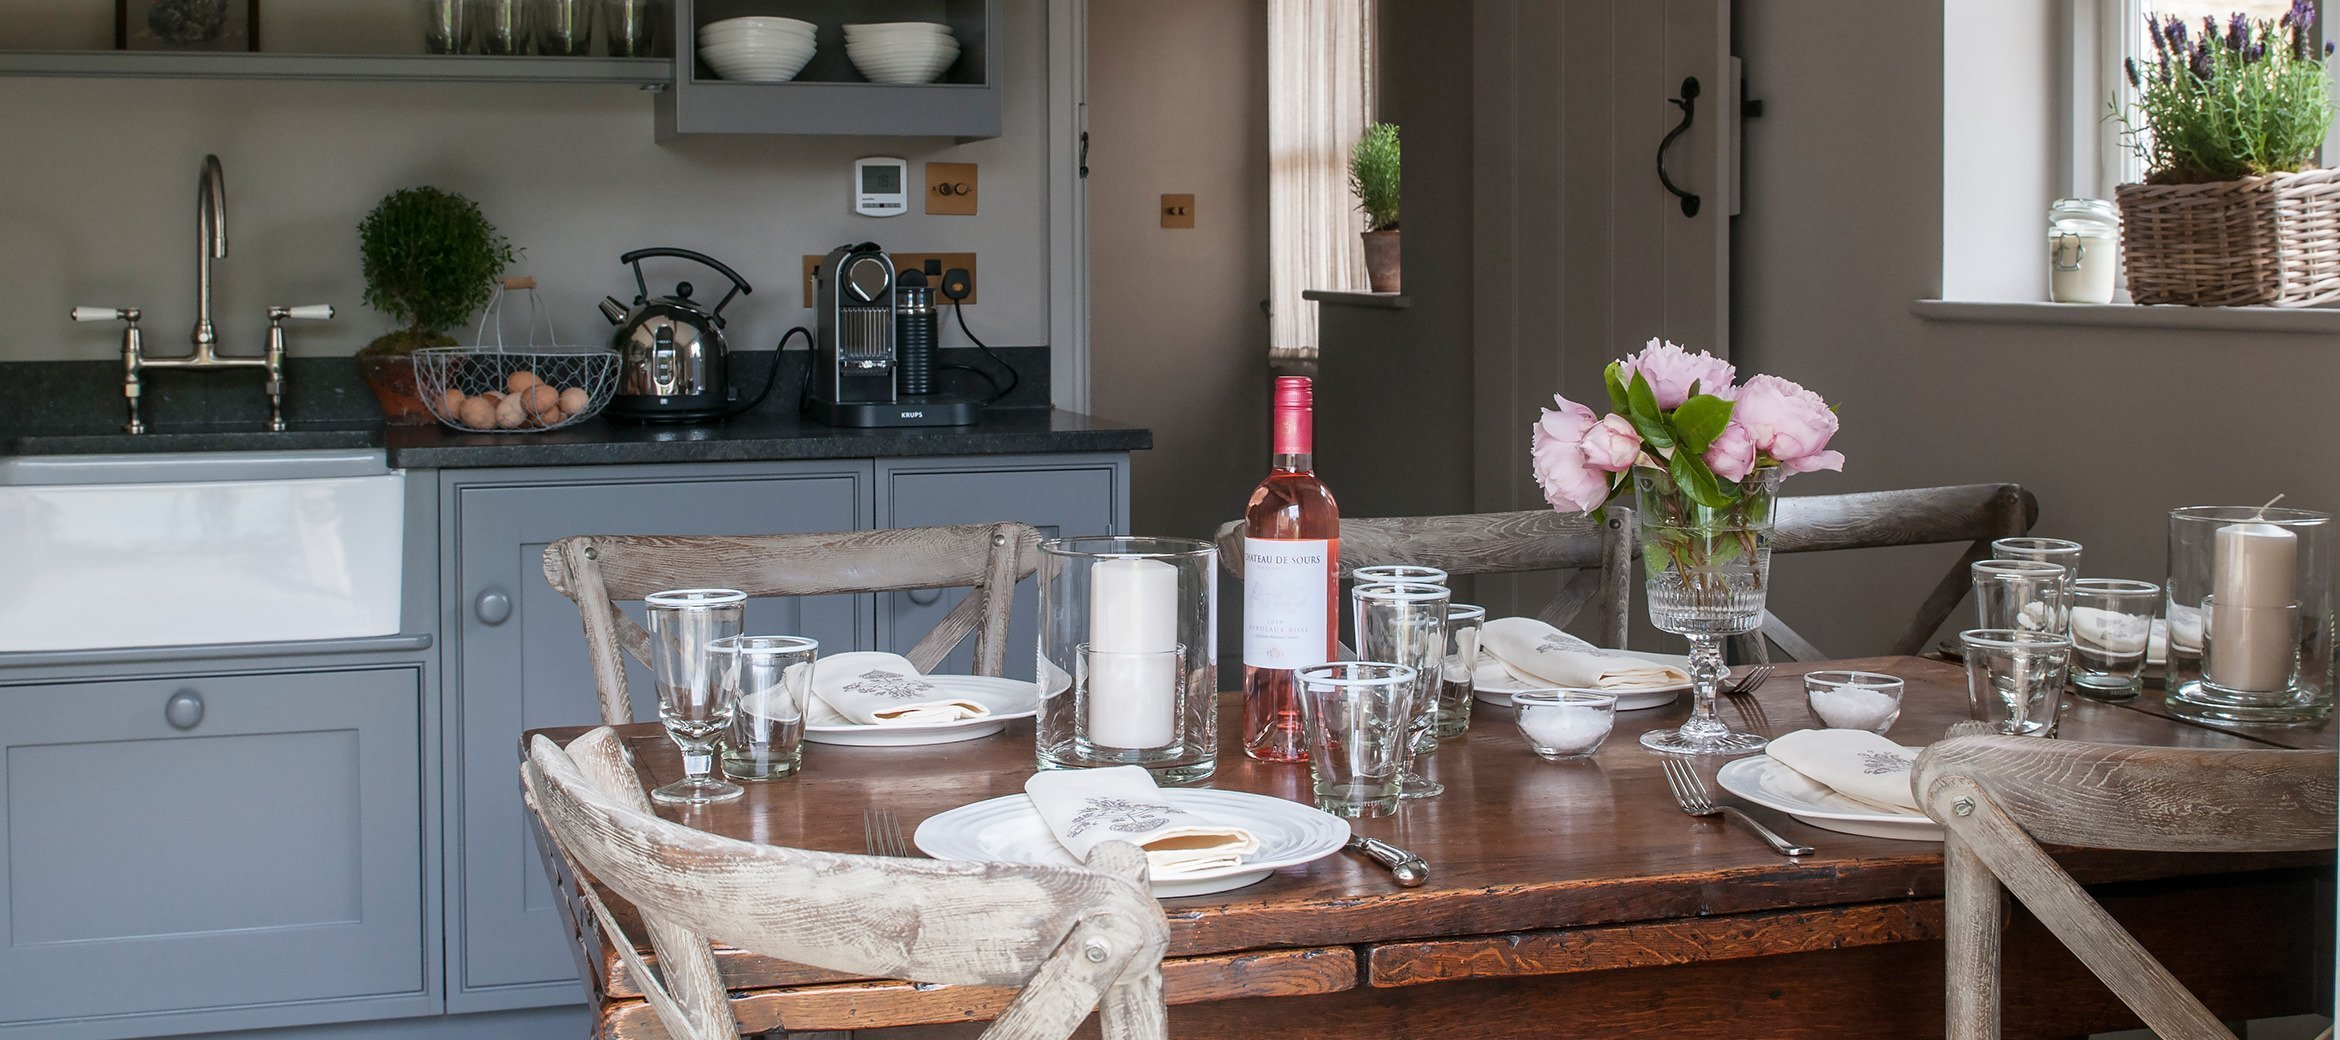 dovecote-luxury-cotswold-cottage-kitchen-dining-table